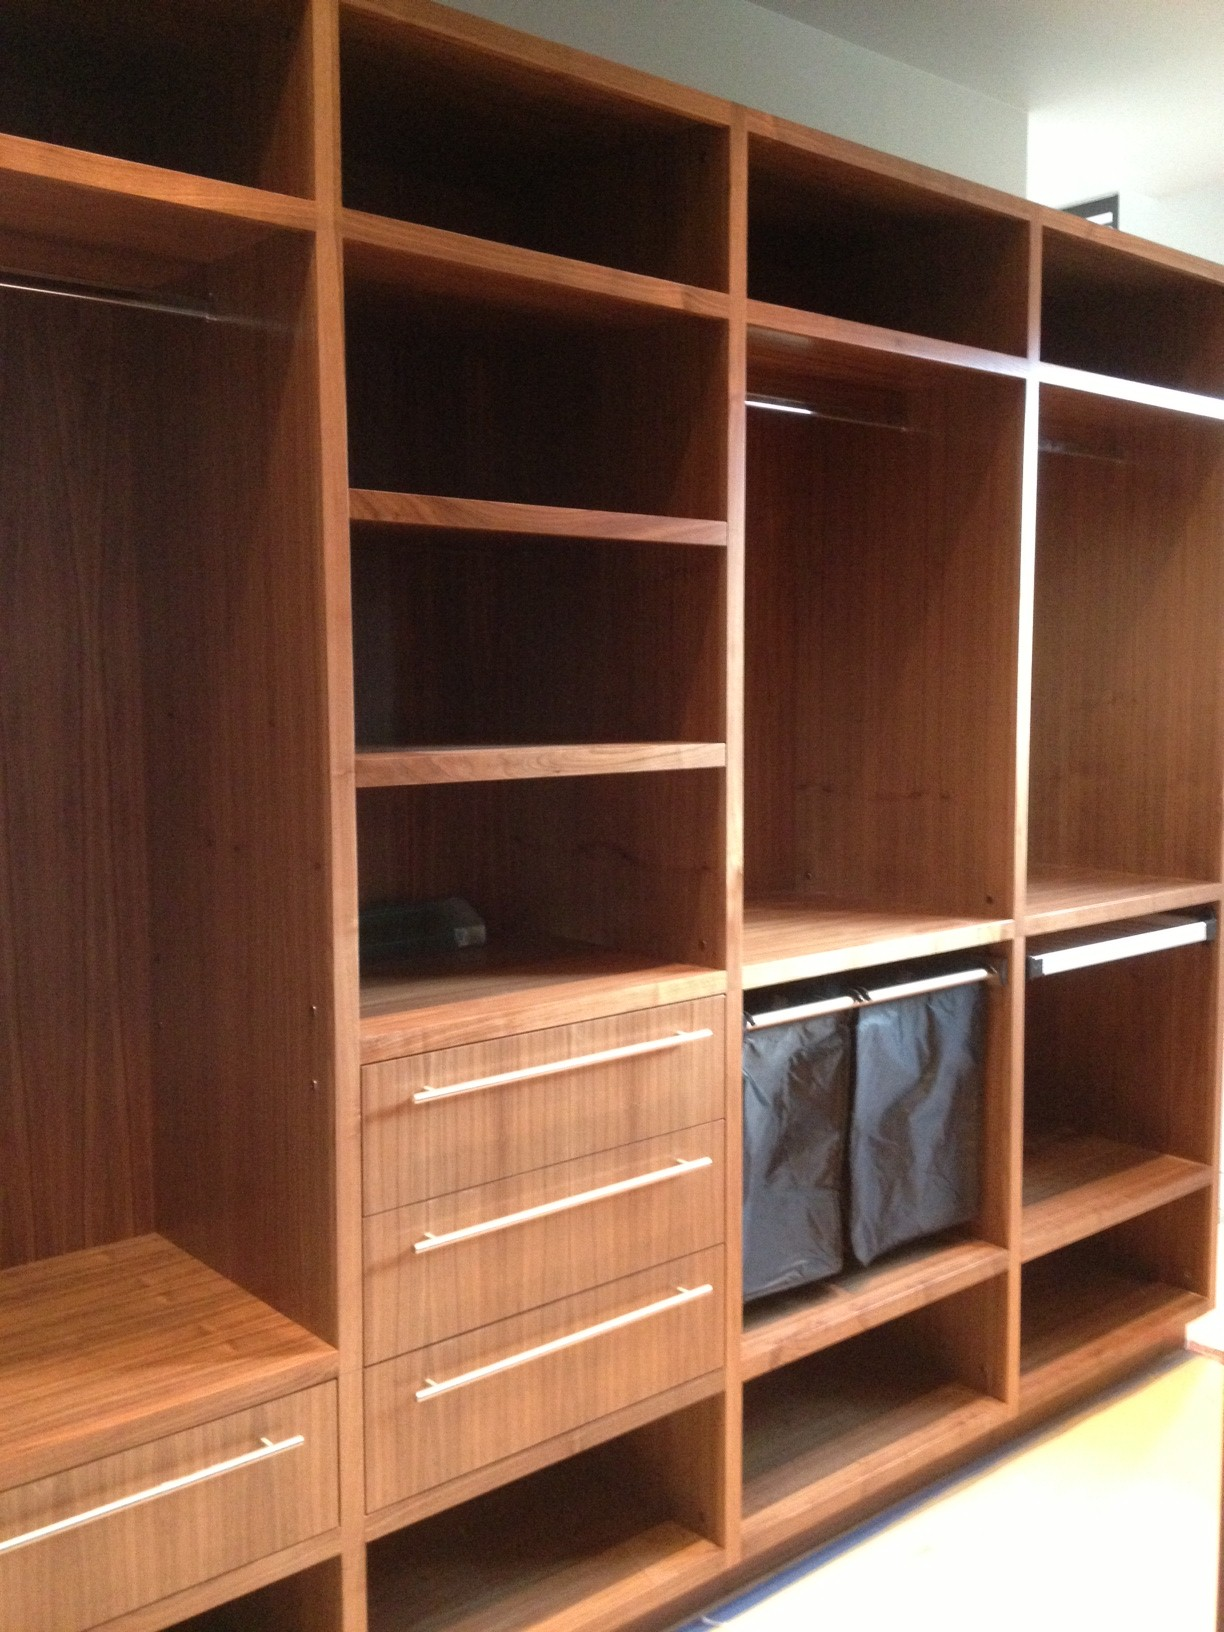 walnut-custom-walk-in-closet-cabinetry.JPG